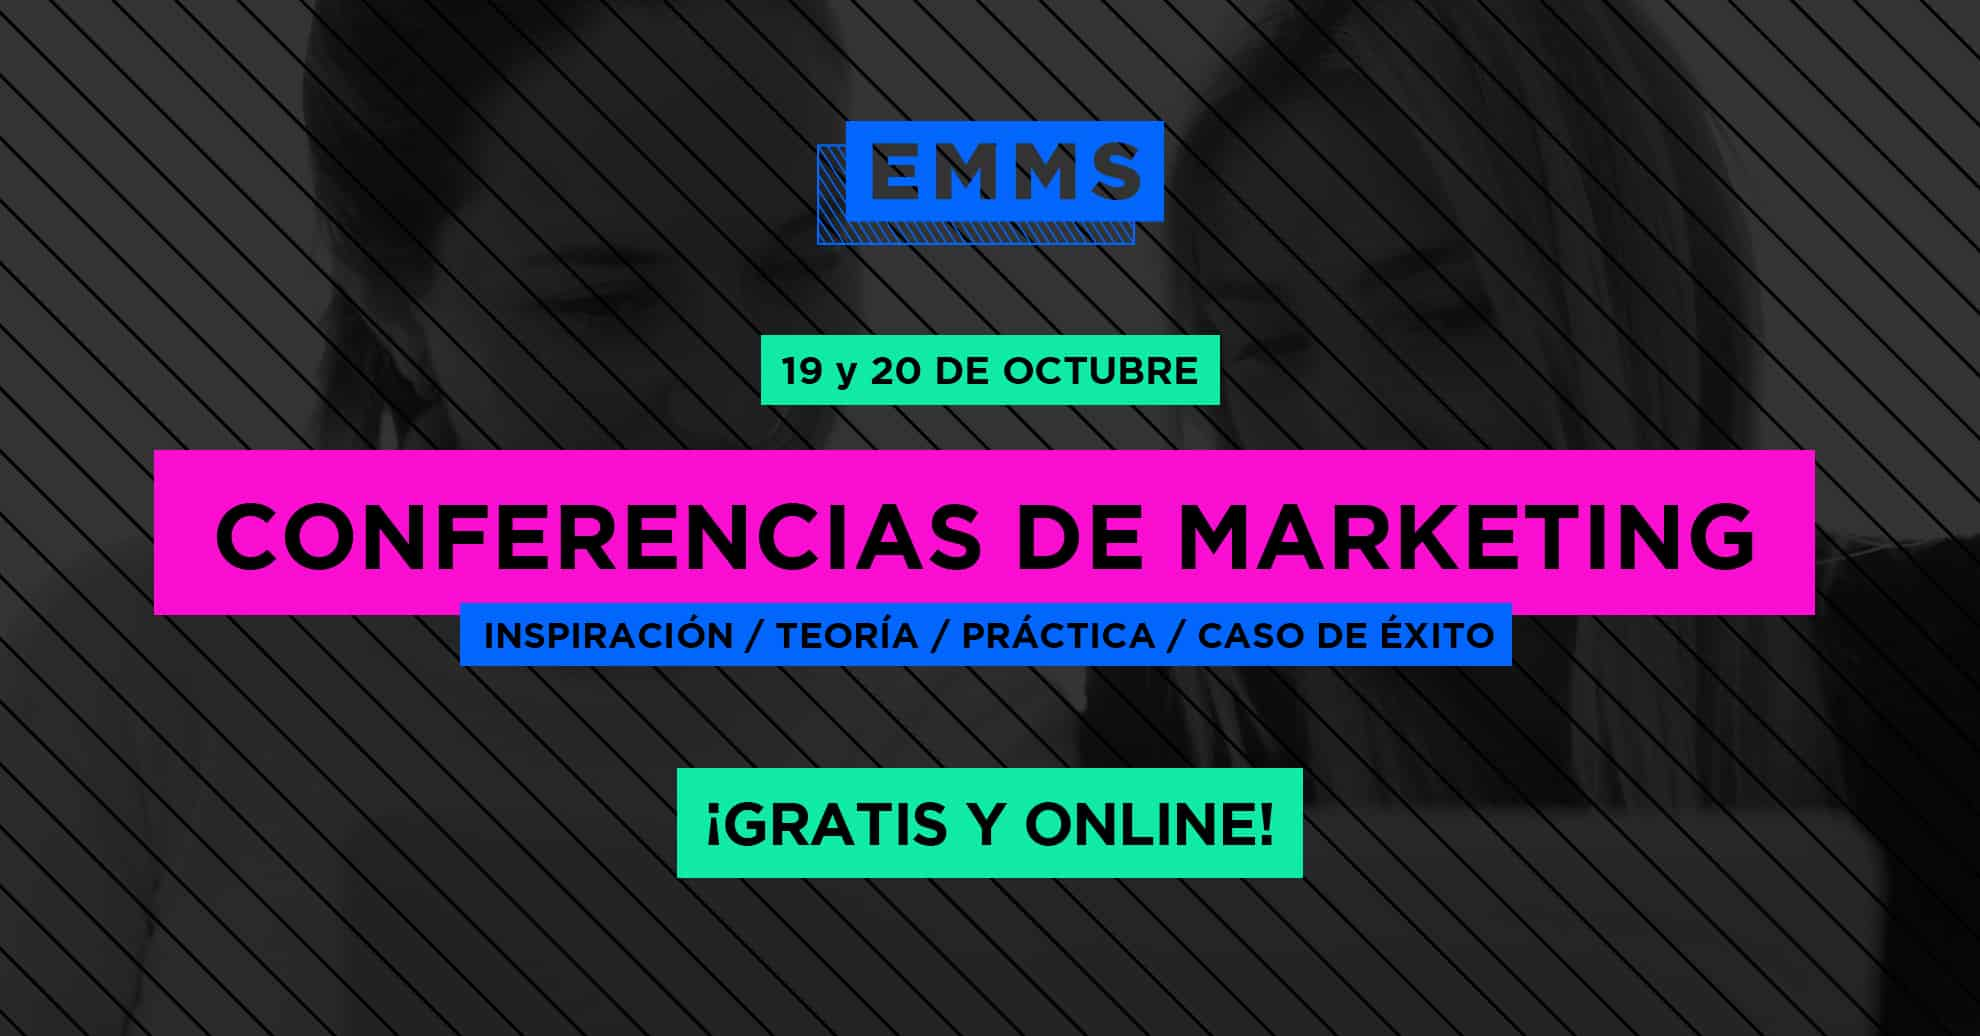 EMMS 2017 - El Marketing del futuro se da cita en la web 8